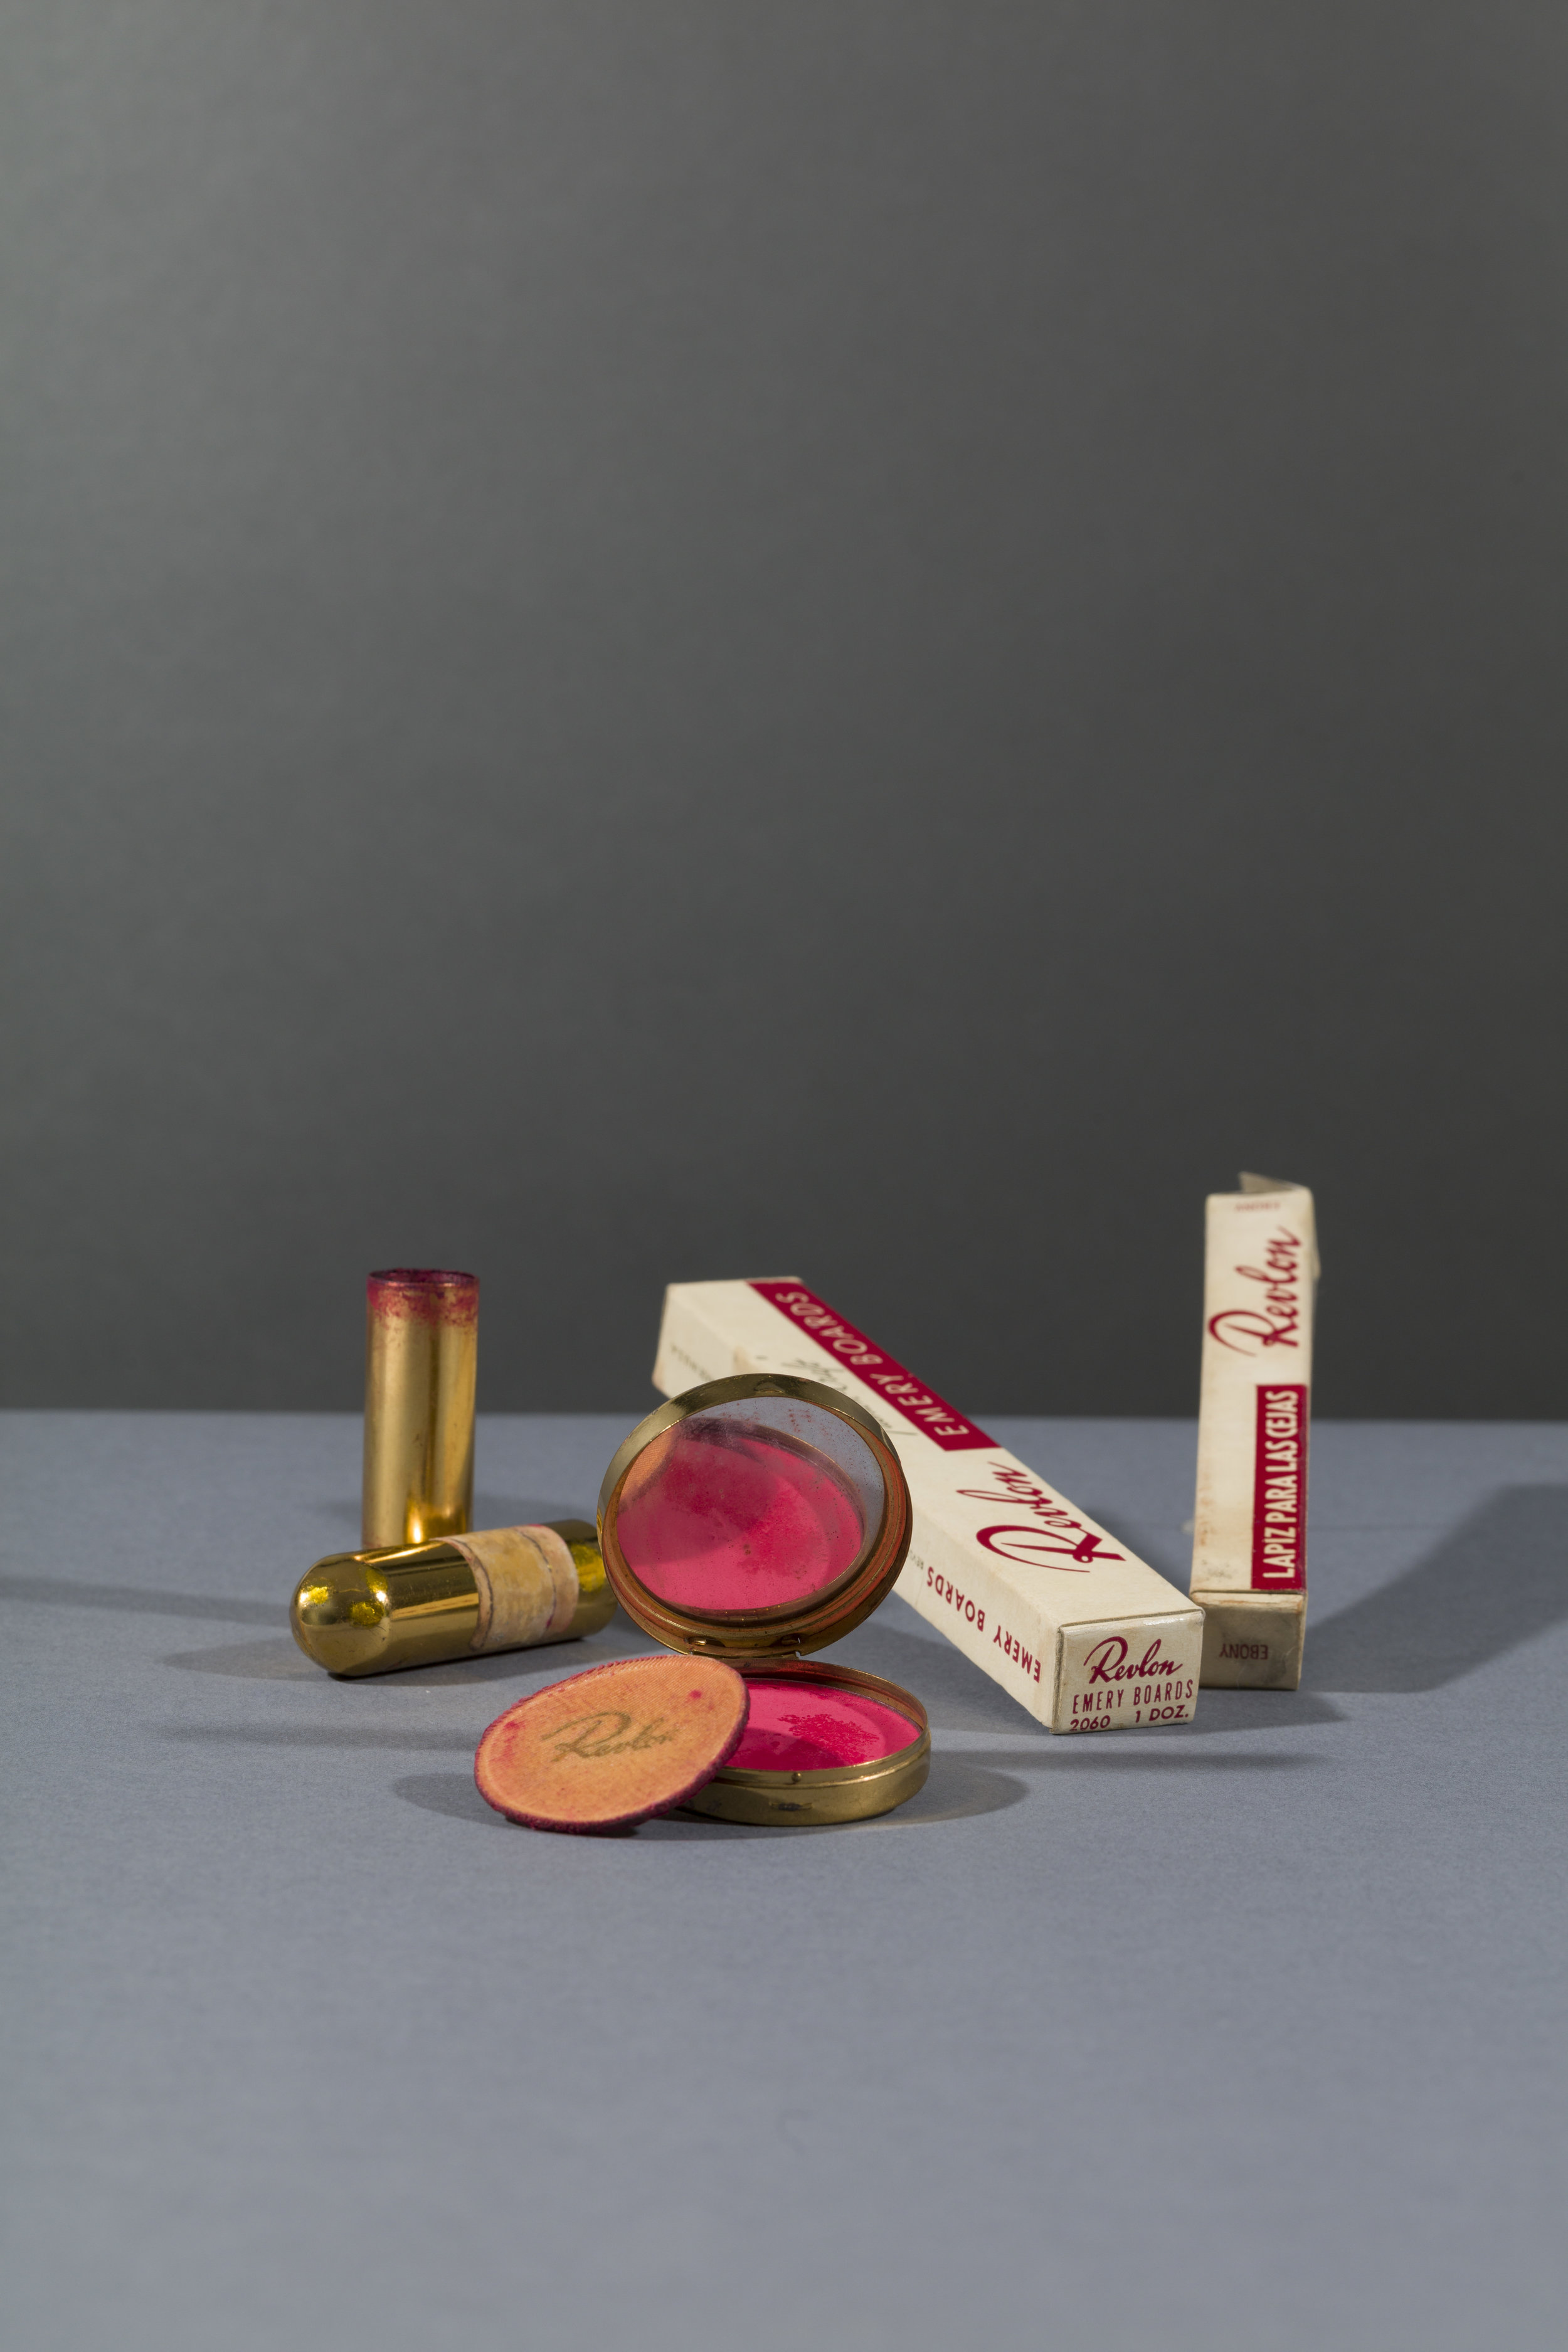 Revlon compact and powderpuff with blusher in 'Clear Red' and Revlon lipstick in 'Everything's Rosy'; emery boards and eyebrow pencil in 'Ebony'. Before 1954. Photograph Javier Hinojosa. © Diego Riviera and Frida Kahlo Archives, Banco de México, Fiduciary of the Trust of the Diego Riviera and Frida Kahlo Museums